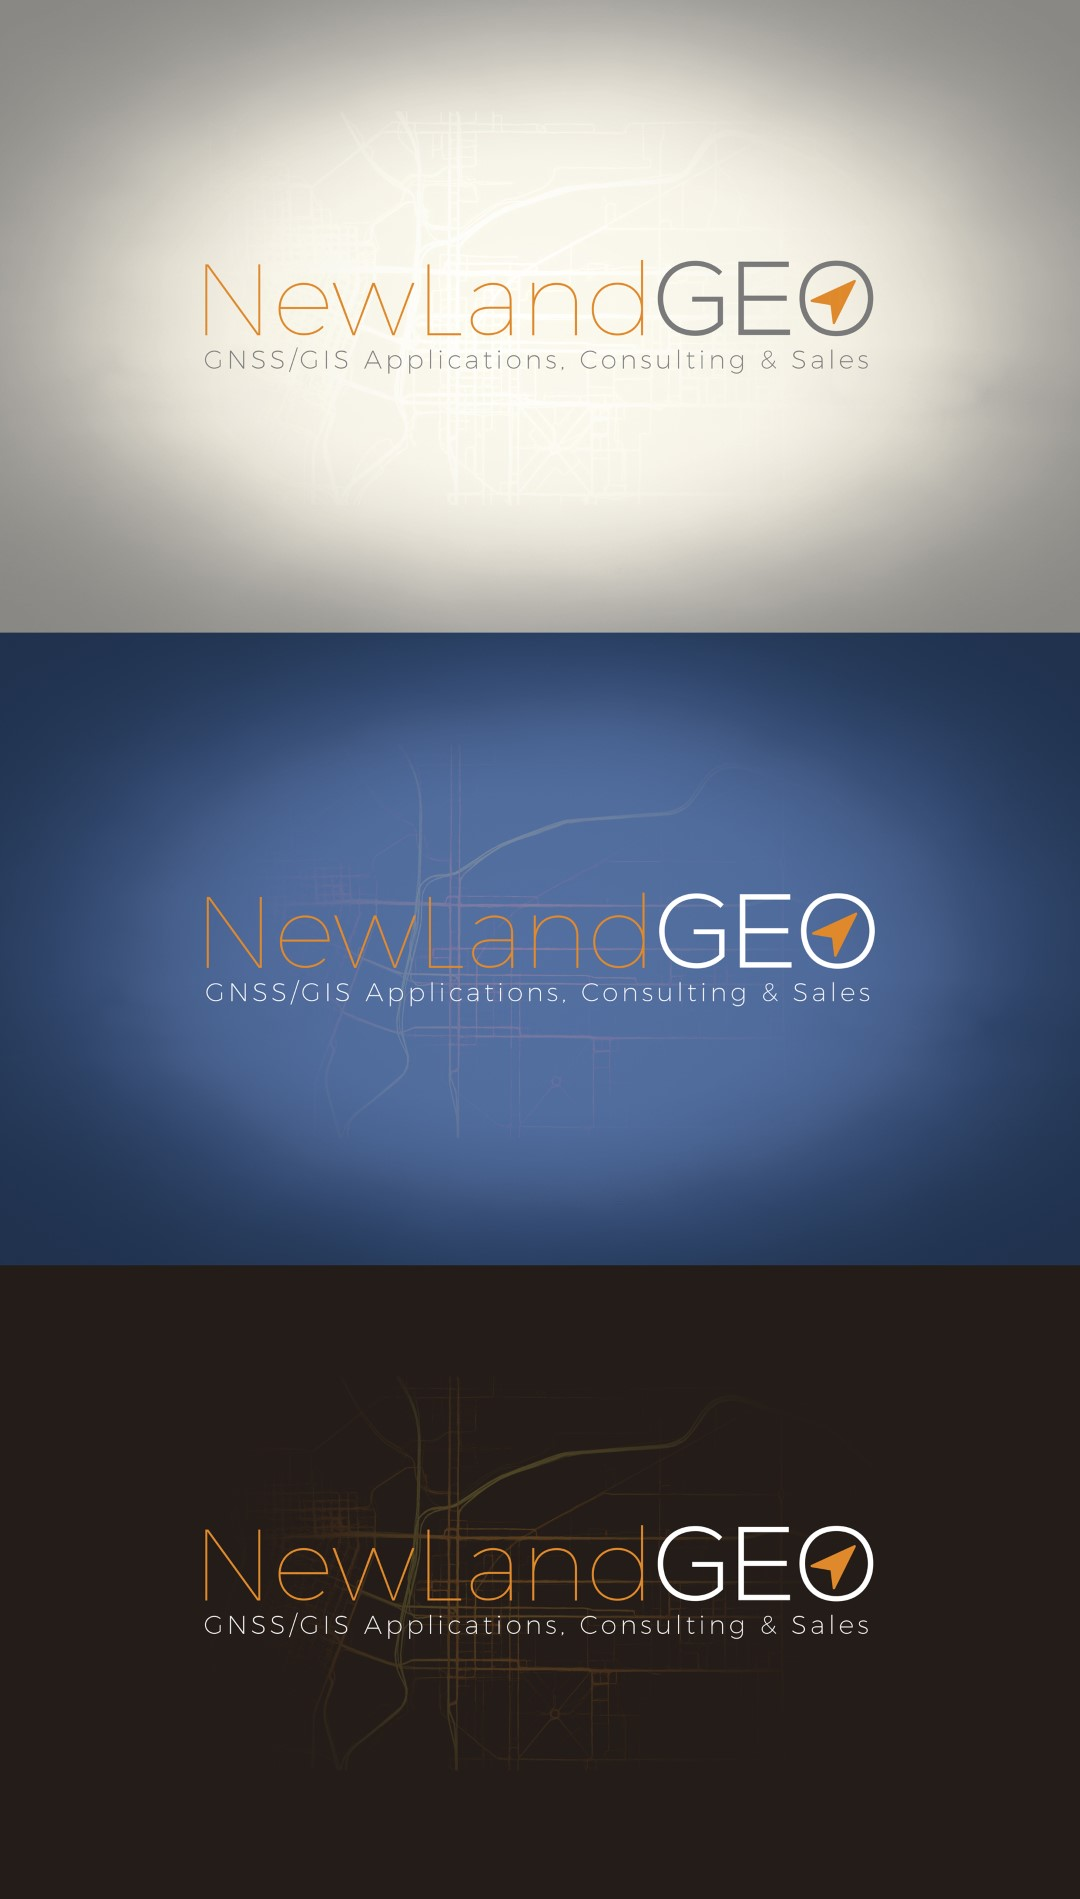 logo-newlandgeo-backside-pixels